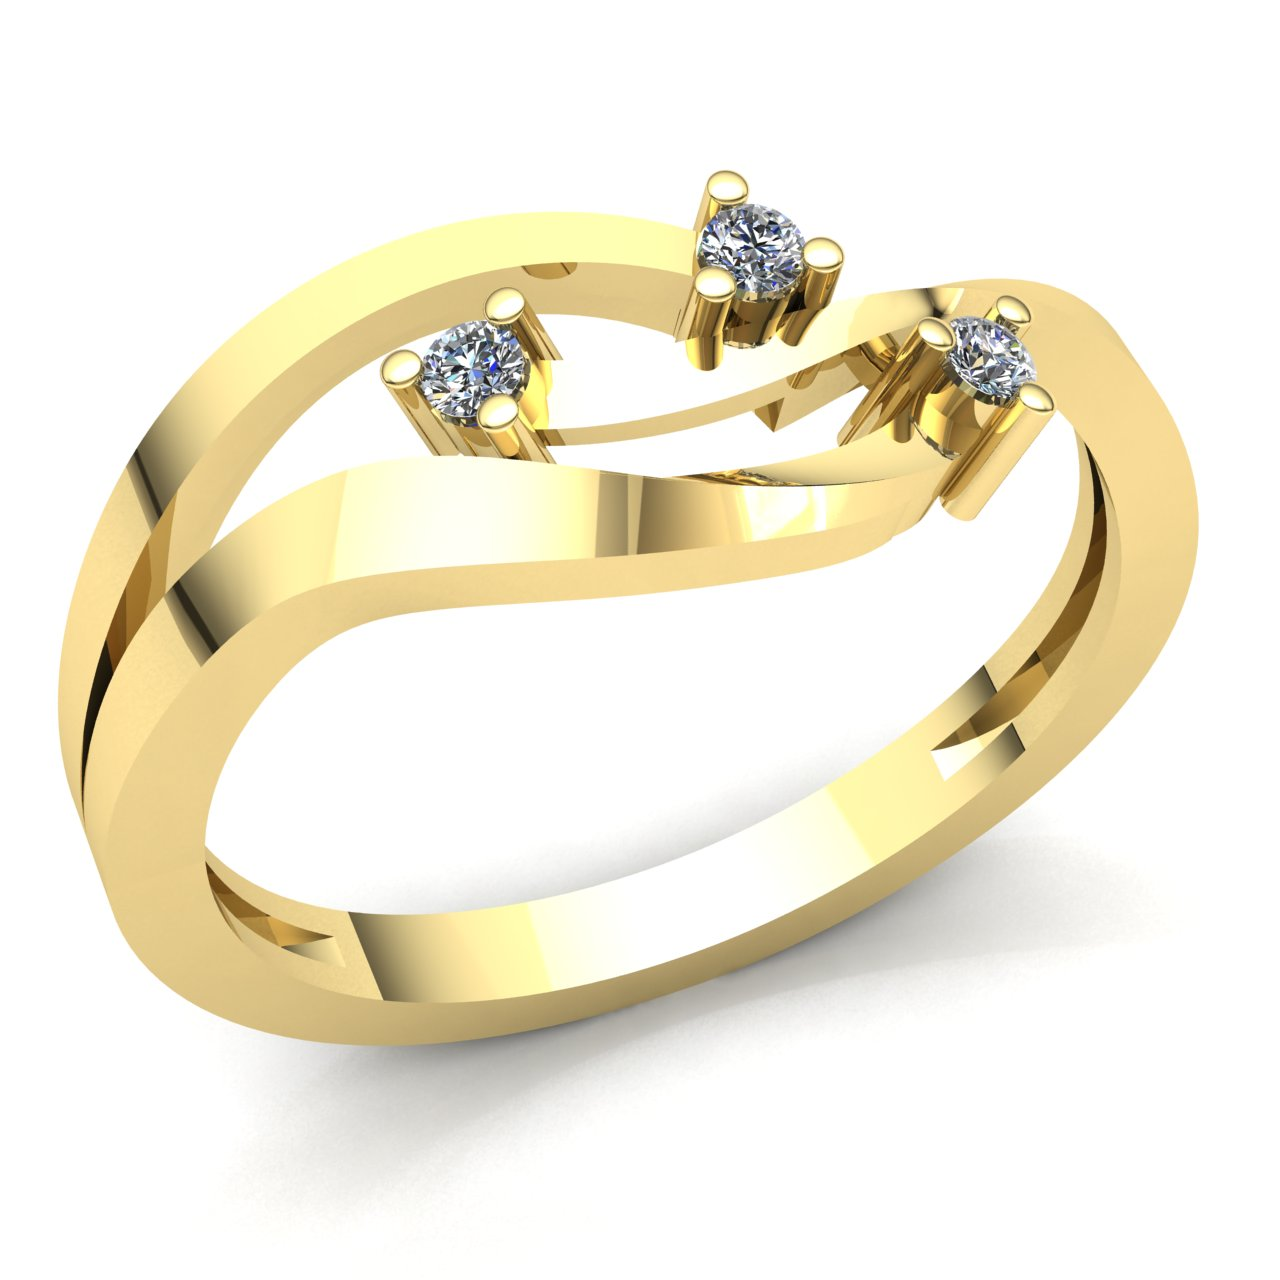 gold rings mainye engagement past ring diamond future wedding present stone